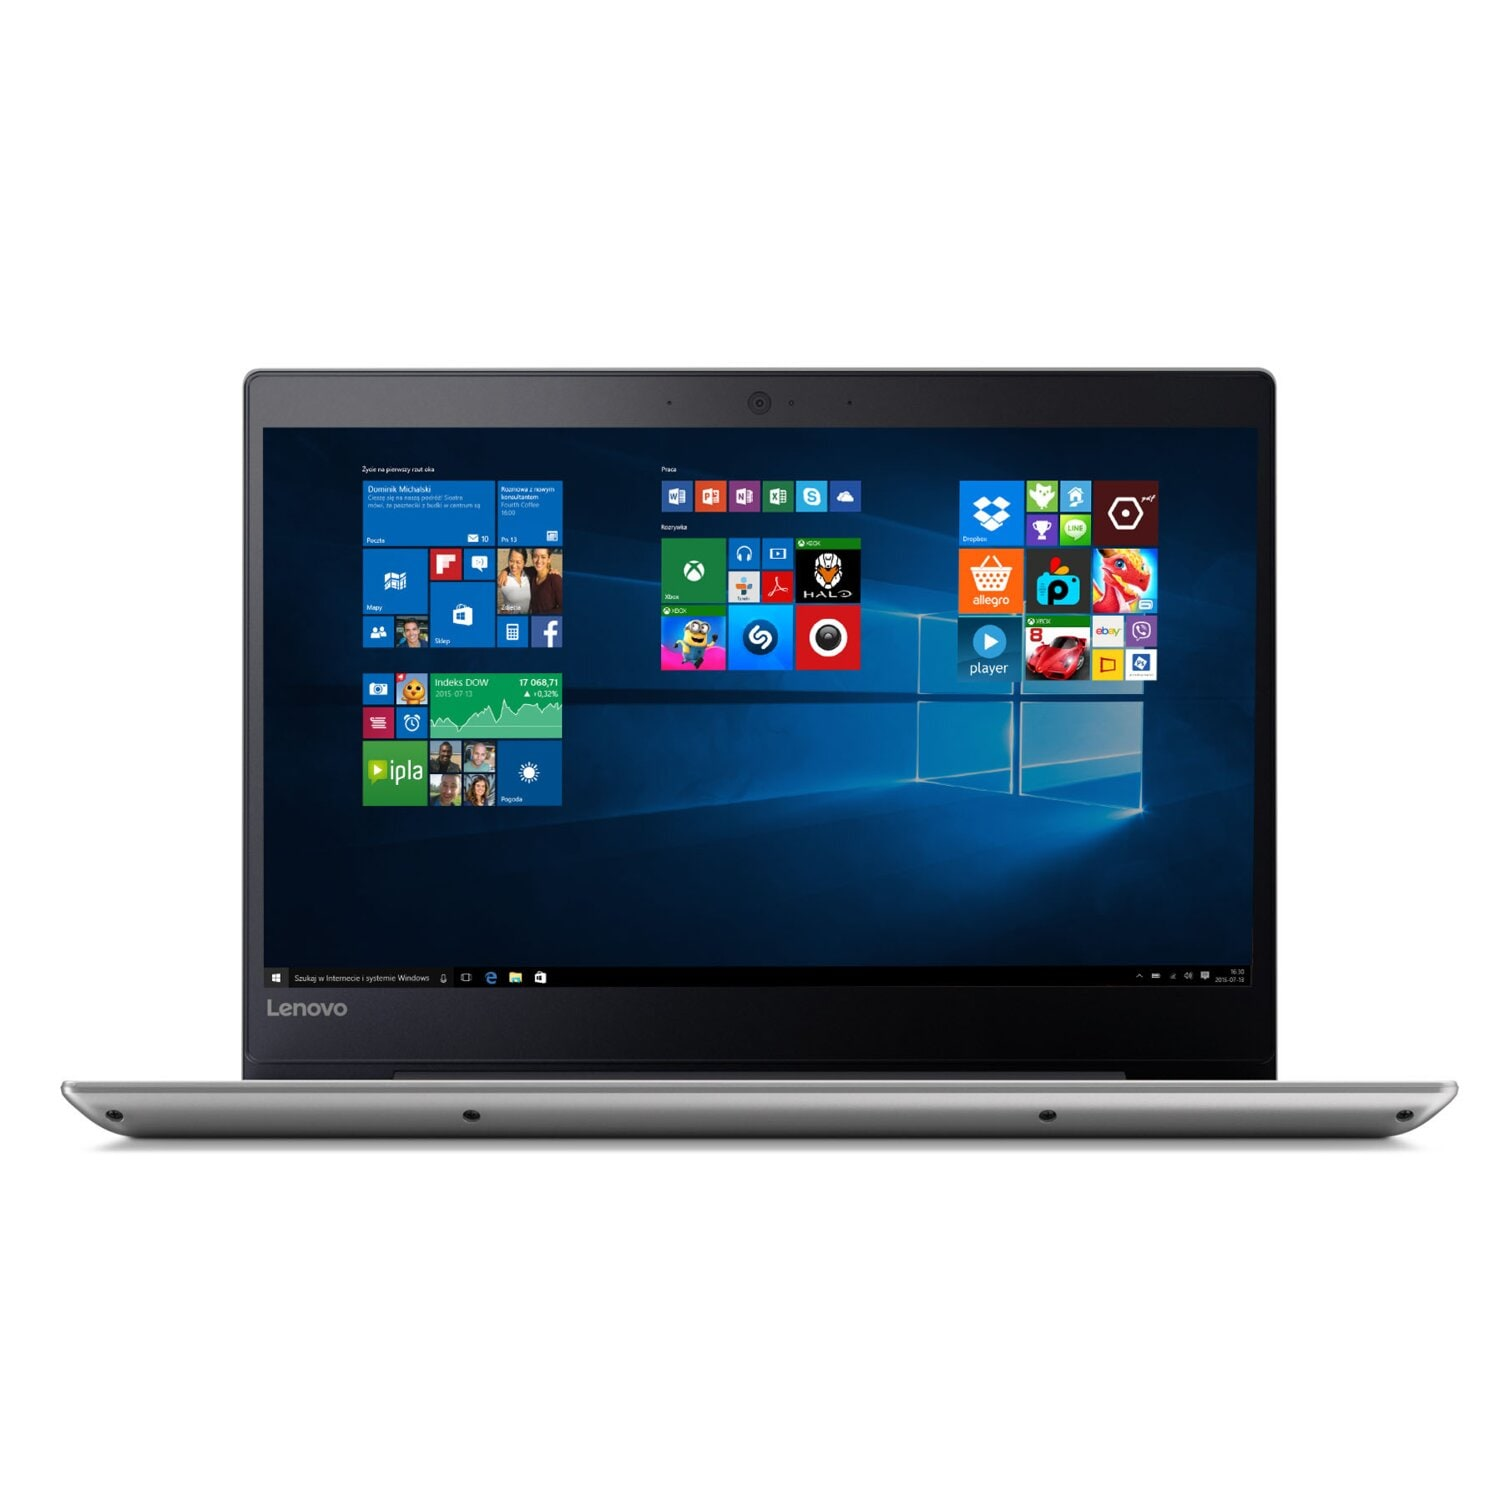 Laptop LENOVO IdeaPad 320S-14IKB 80X400F9PB/0L2PB i3-7100U/4GB/1TB/INT/Win10H Mineral Grey